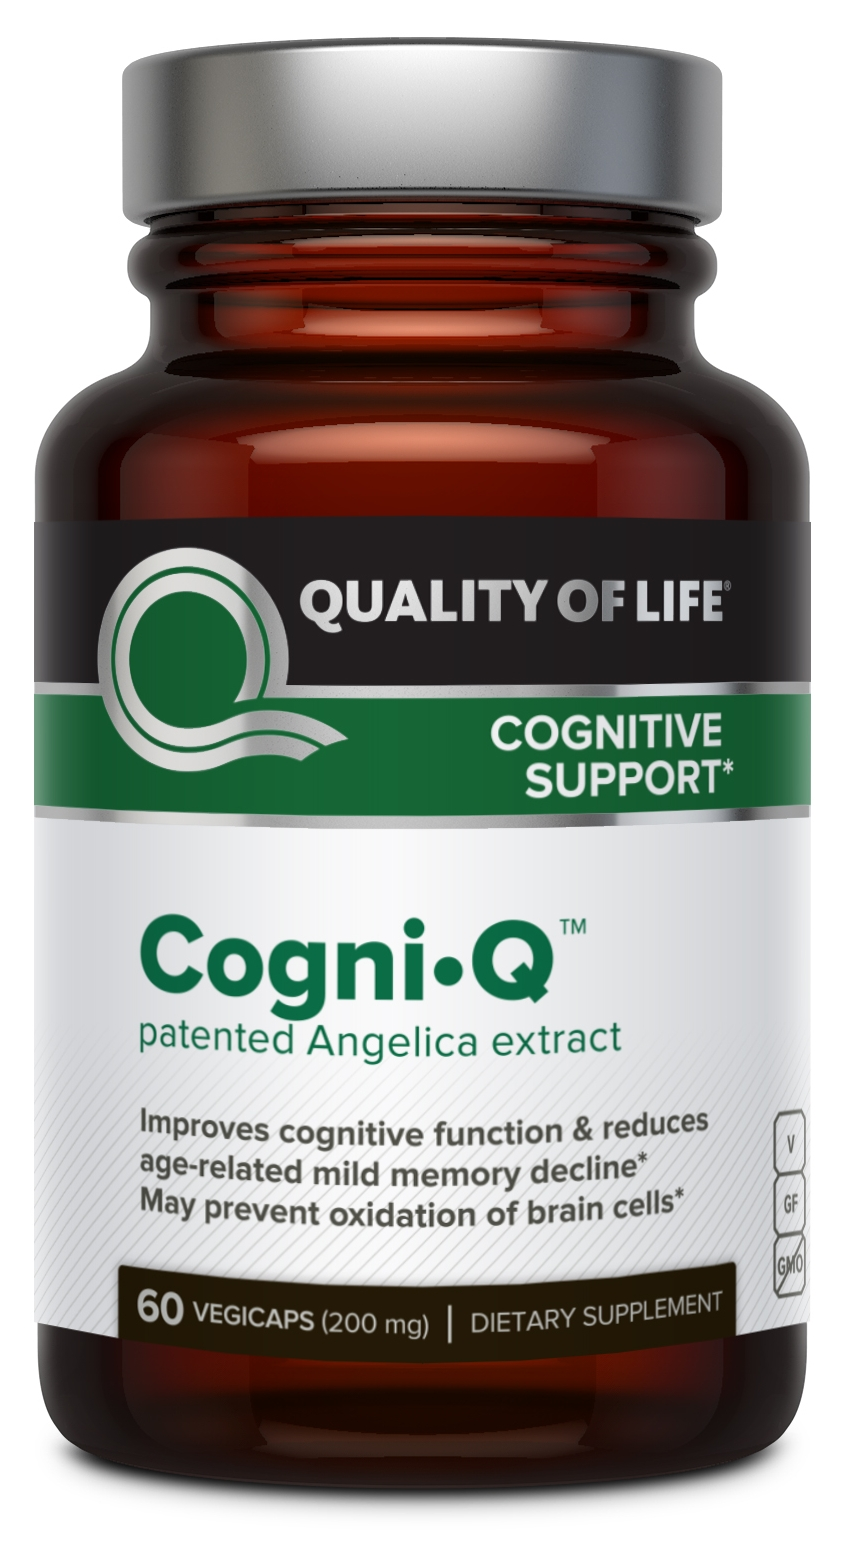 Cogni-Q Patented Angelica Extract 200 mg 60 Vegicaps by Quality of Life Labs